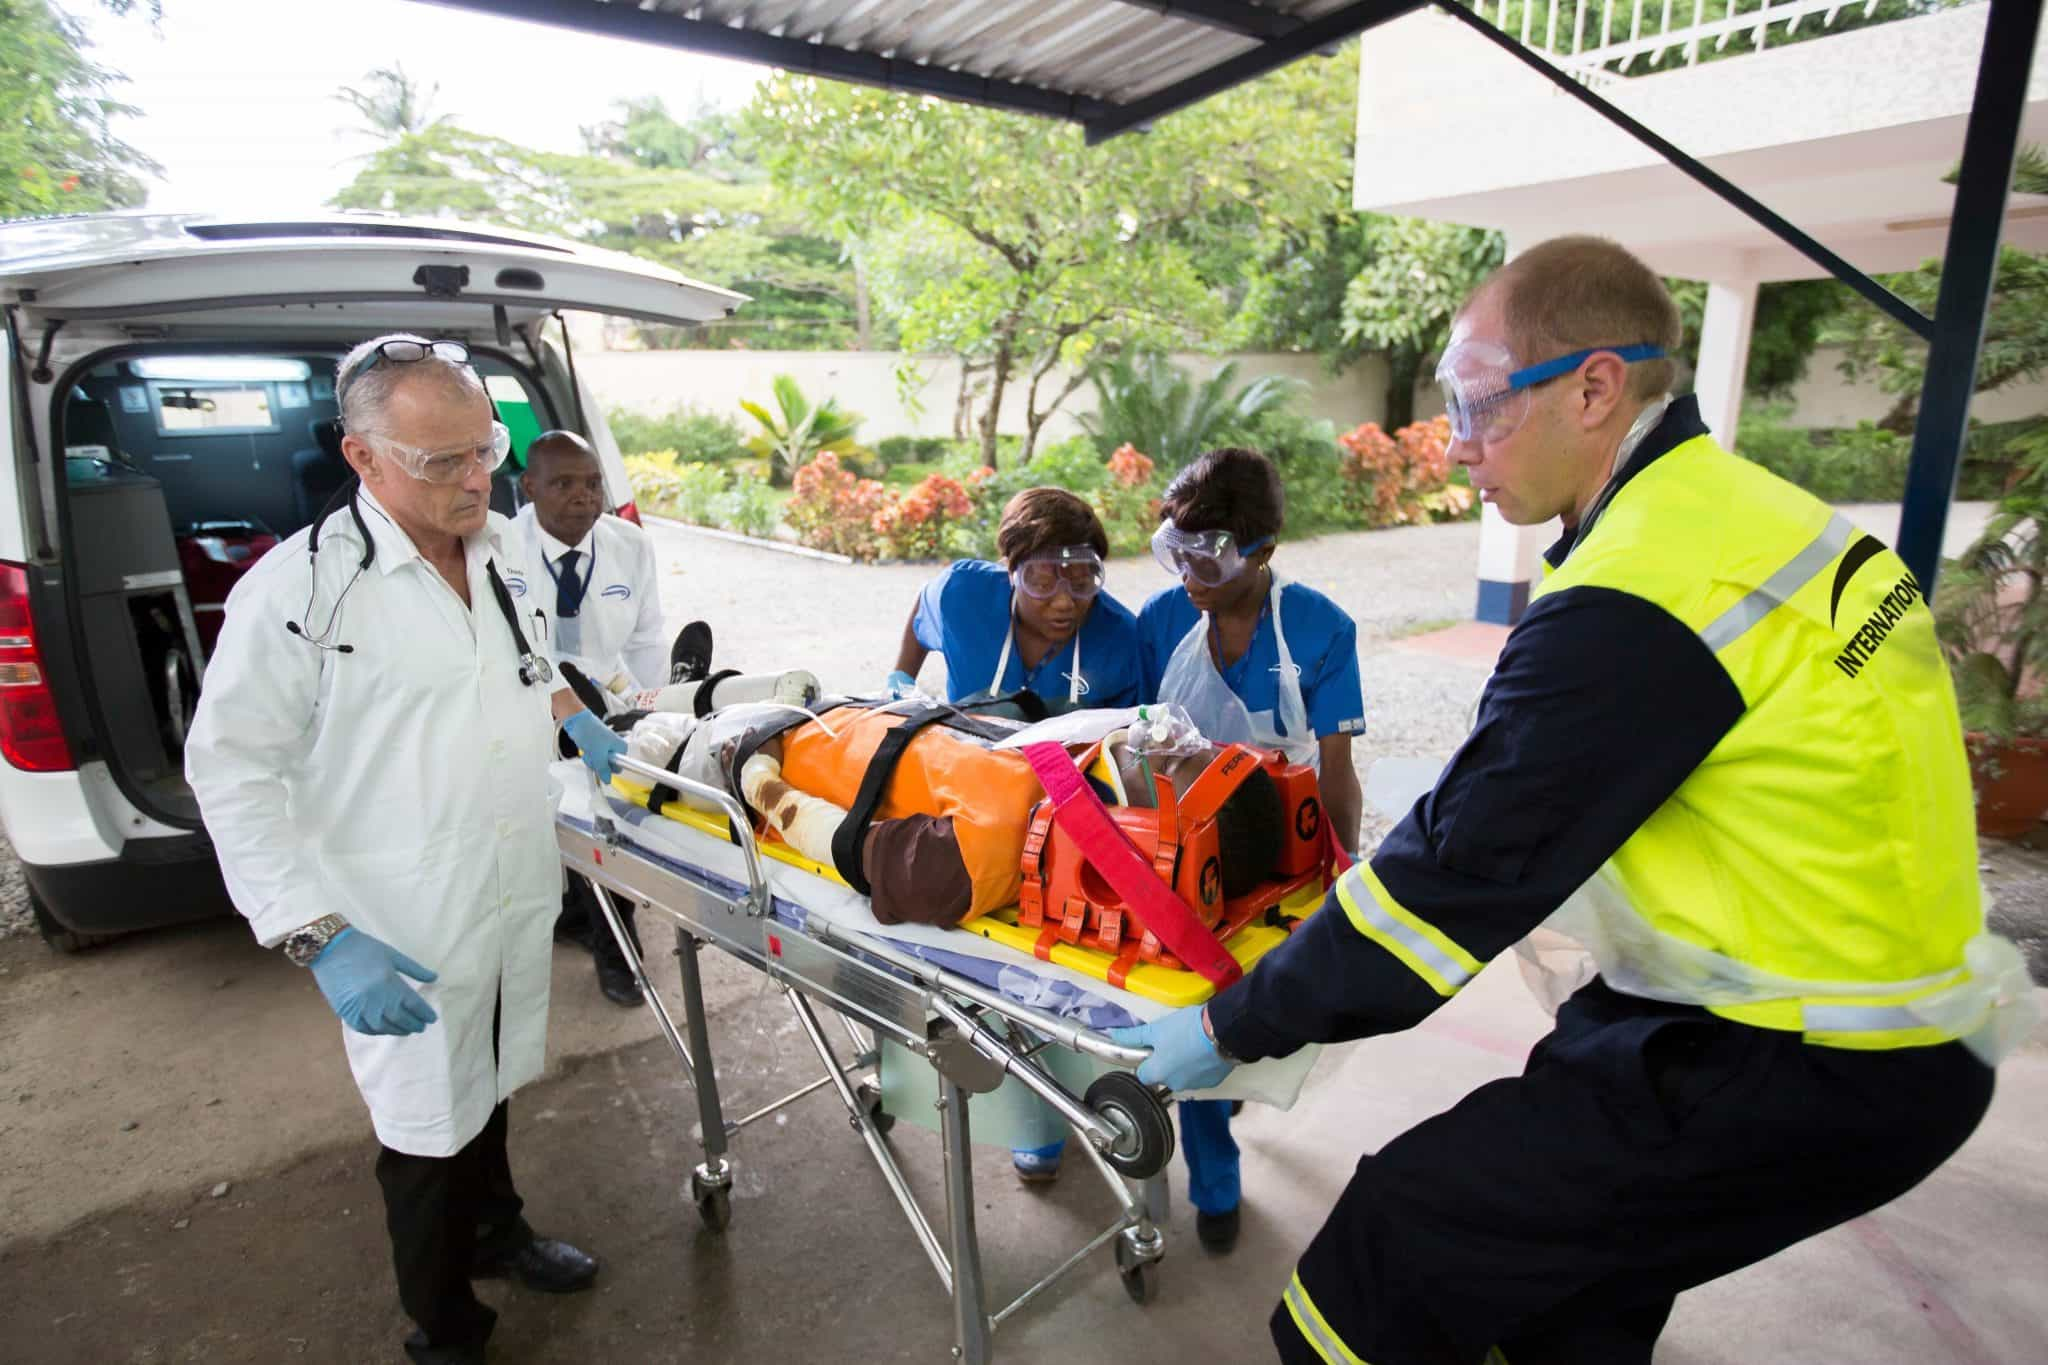 Second Most Seen Provider By Injured Employees